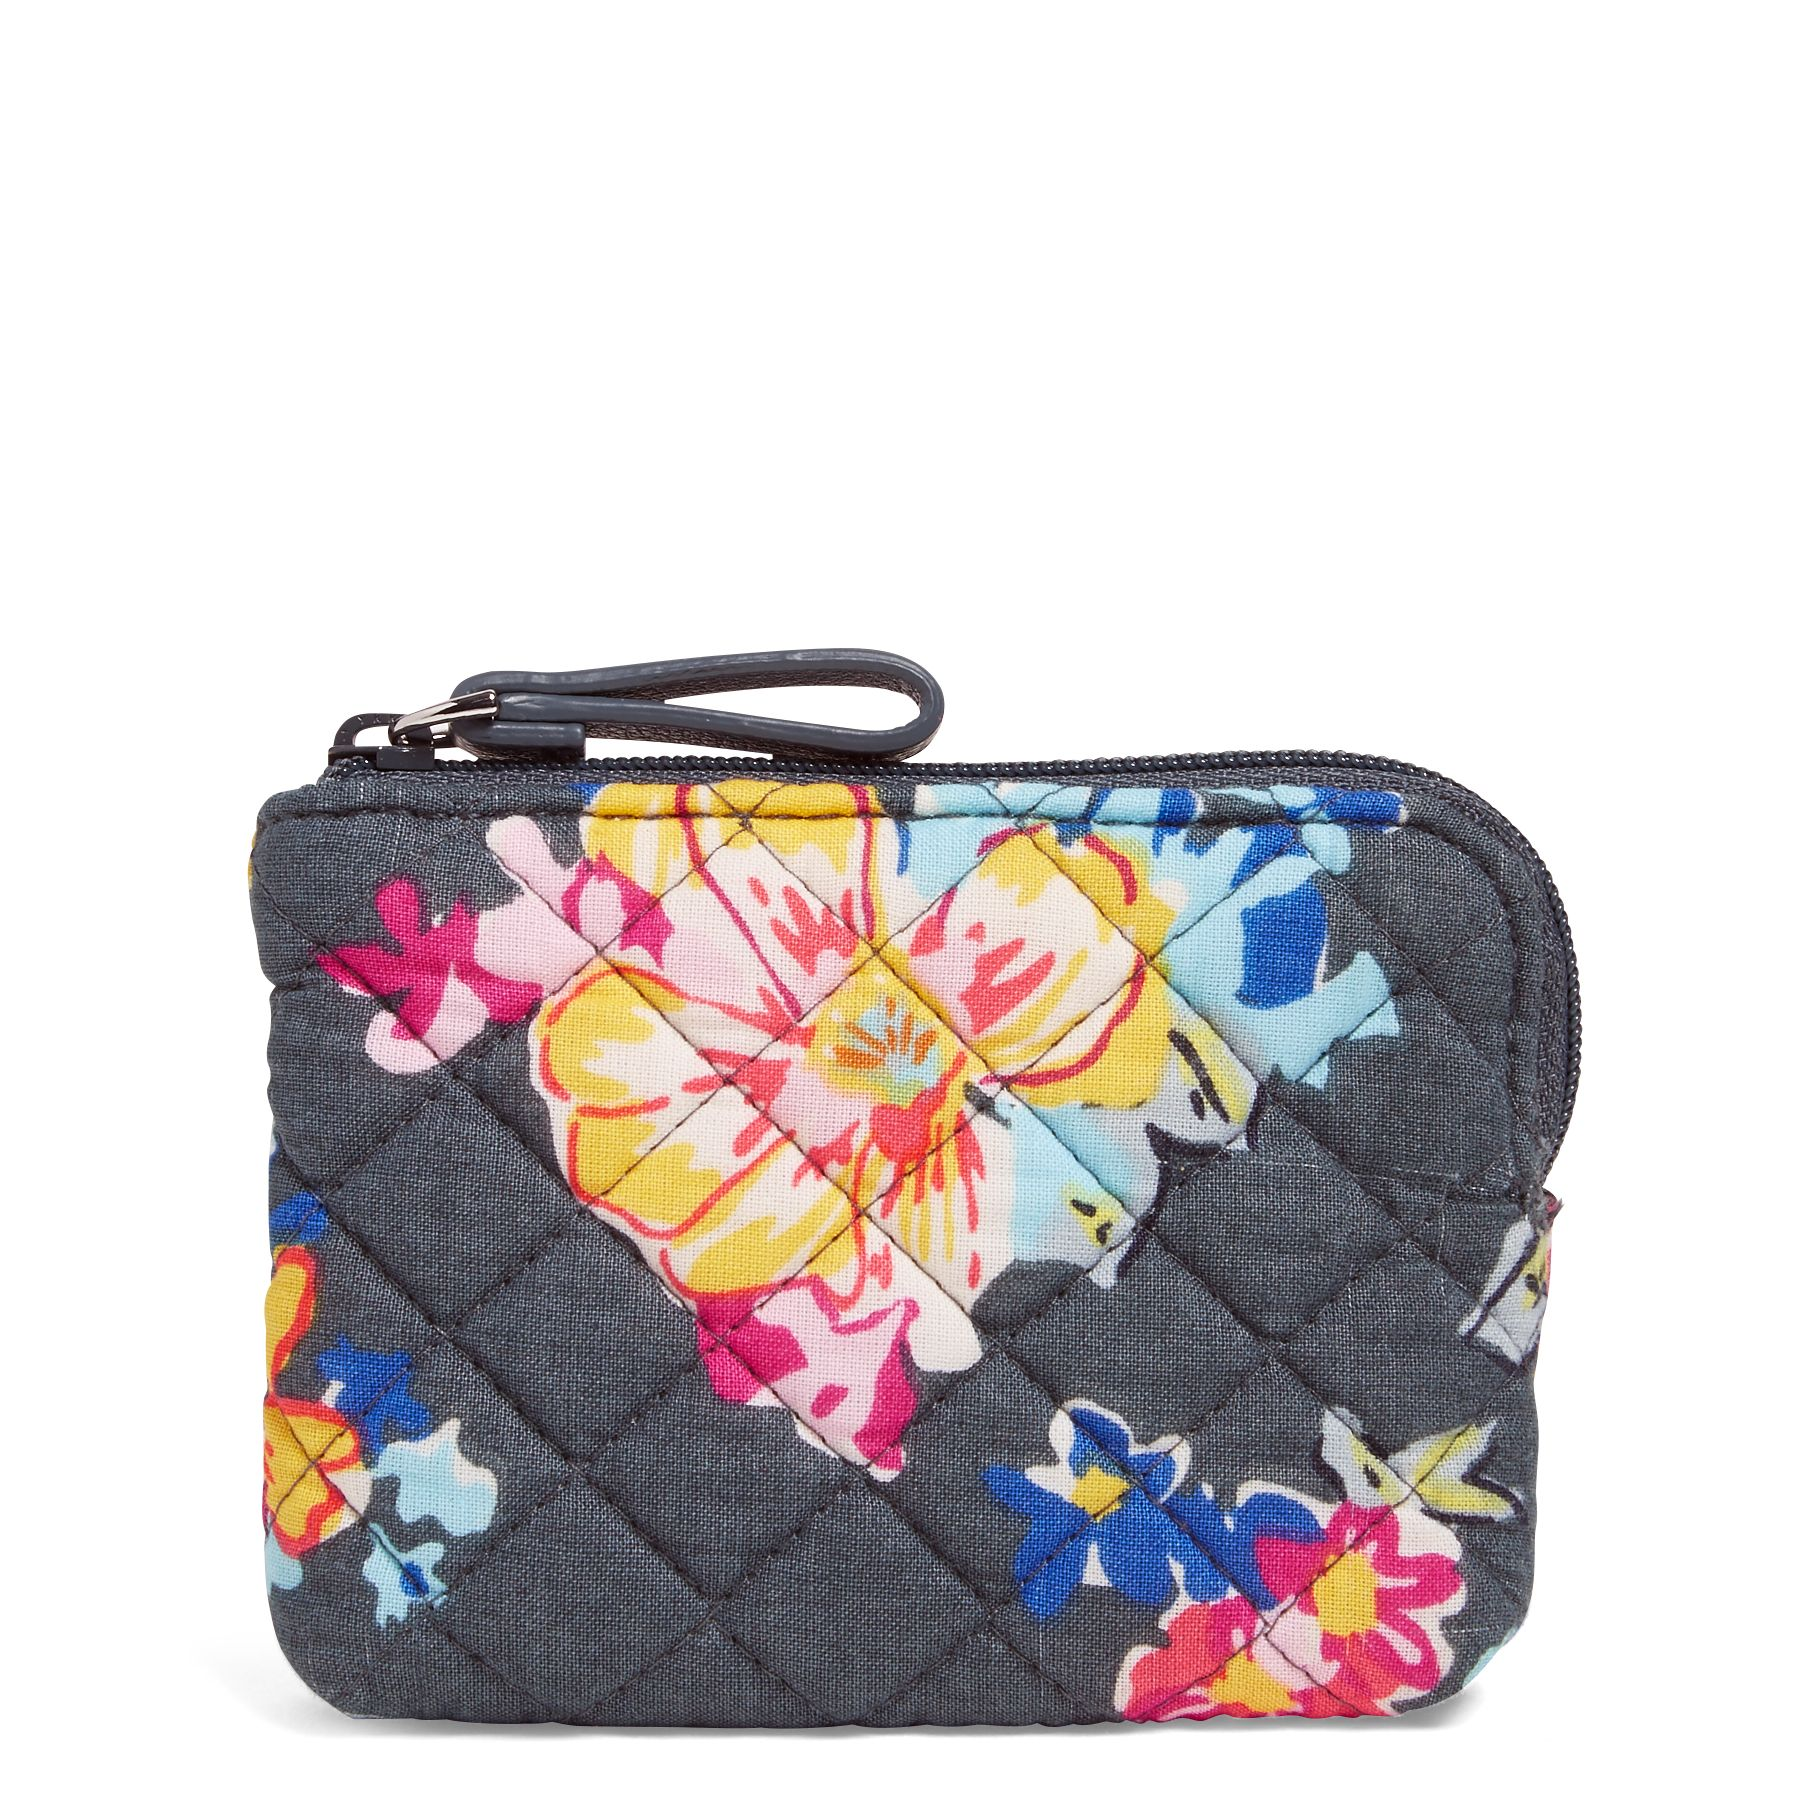 Vera Bradley Iconic Coin Purse, Pretty Posies (886003573426 Accessories) photo